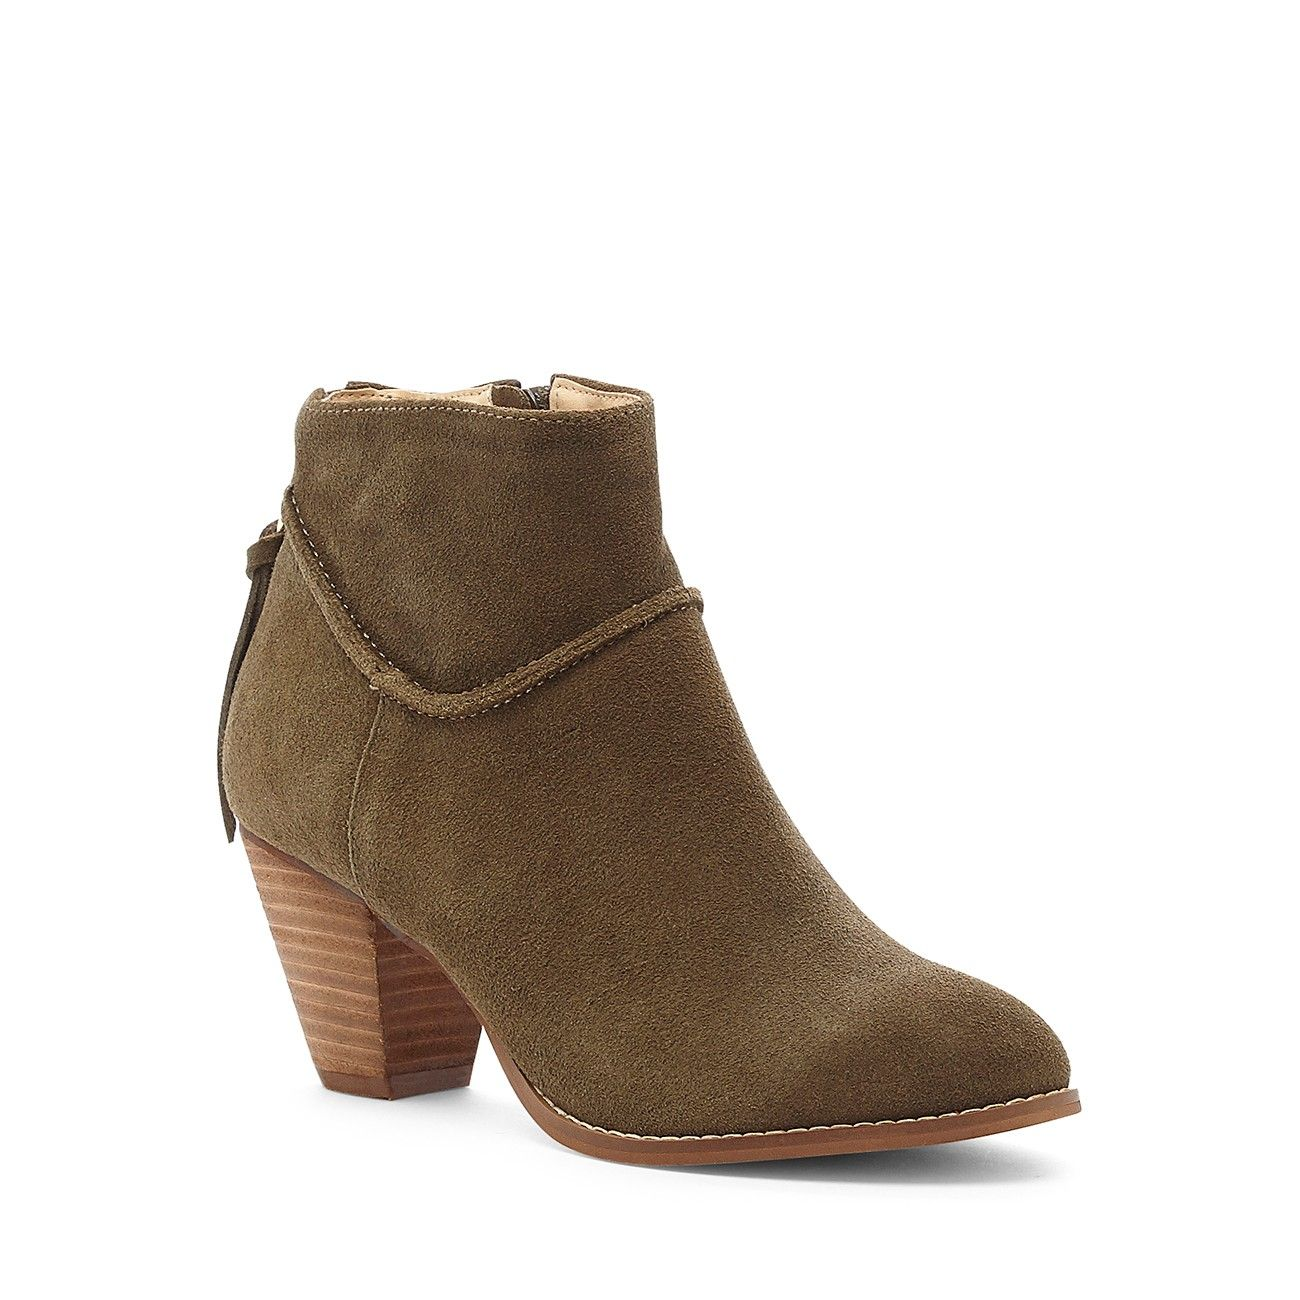 900b8f9bf387 Sole Society - Women s Shoes at Surprisingly Affordable Prices